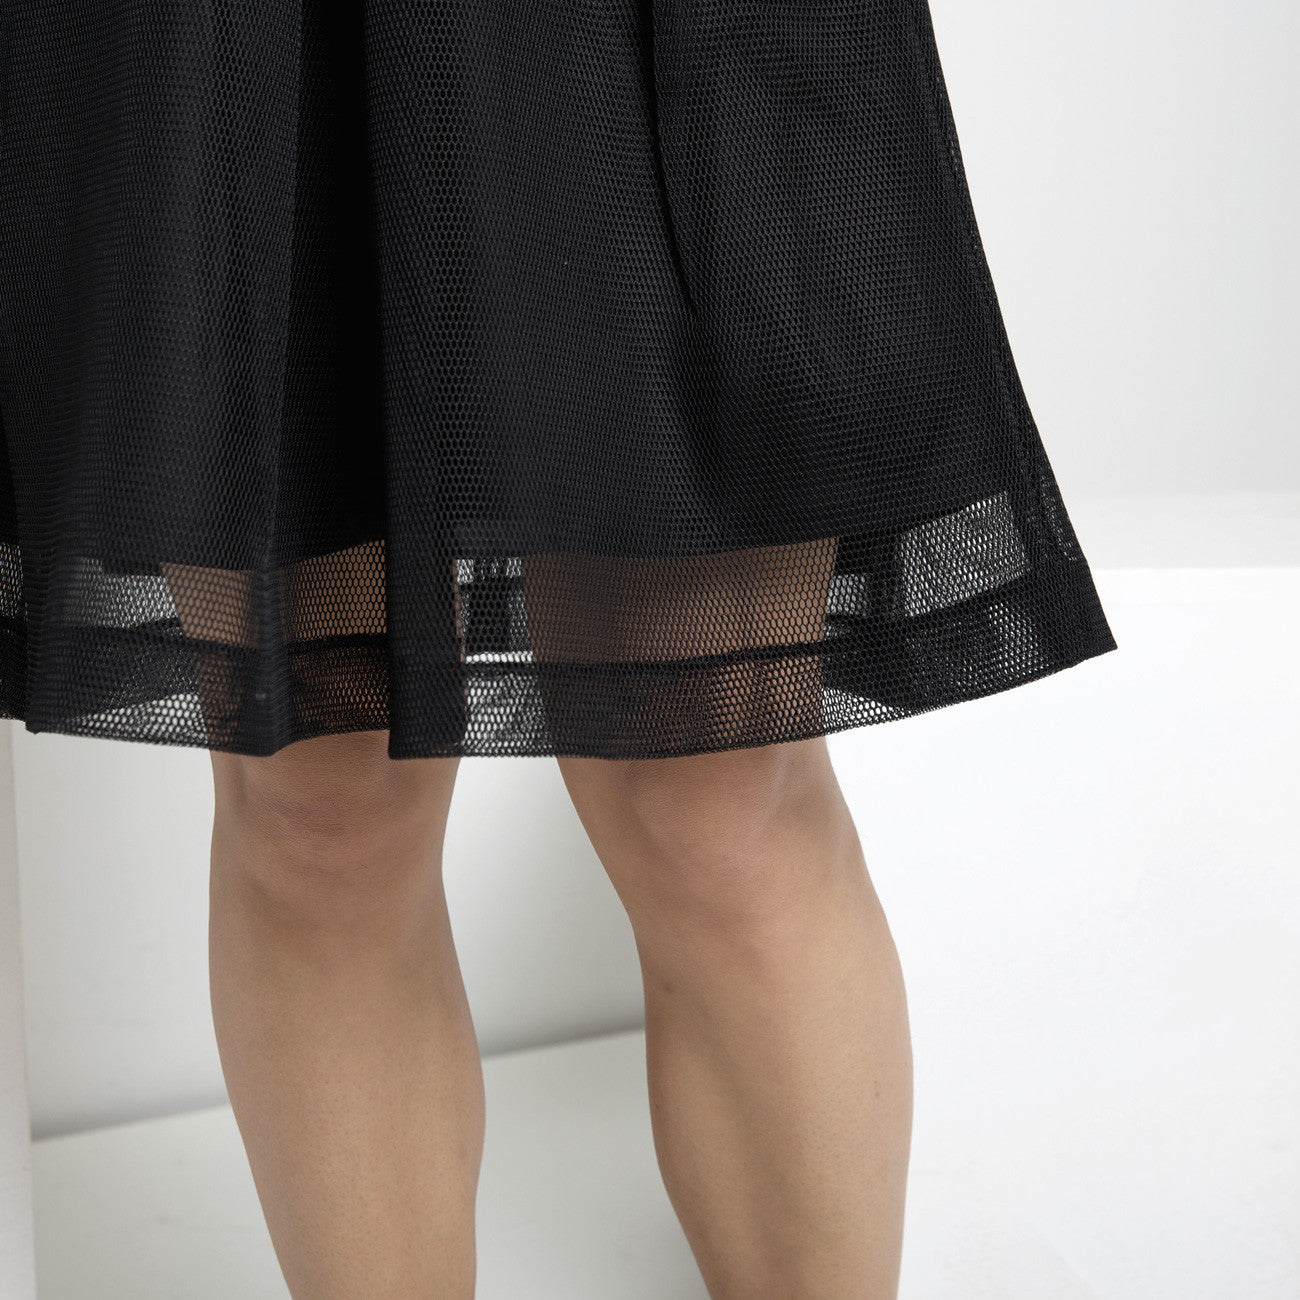 4bb672da62b Fishnet A-Line Skirt FW15. 7115 BY SZEKI